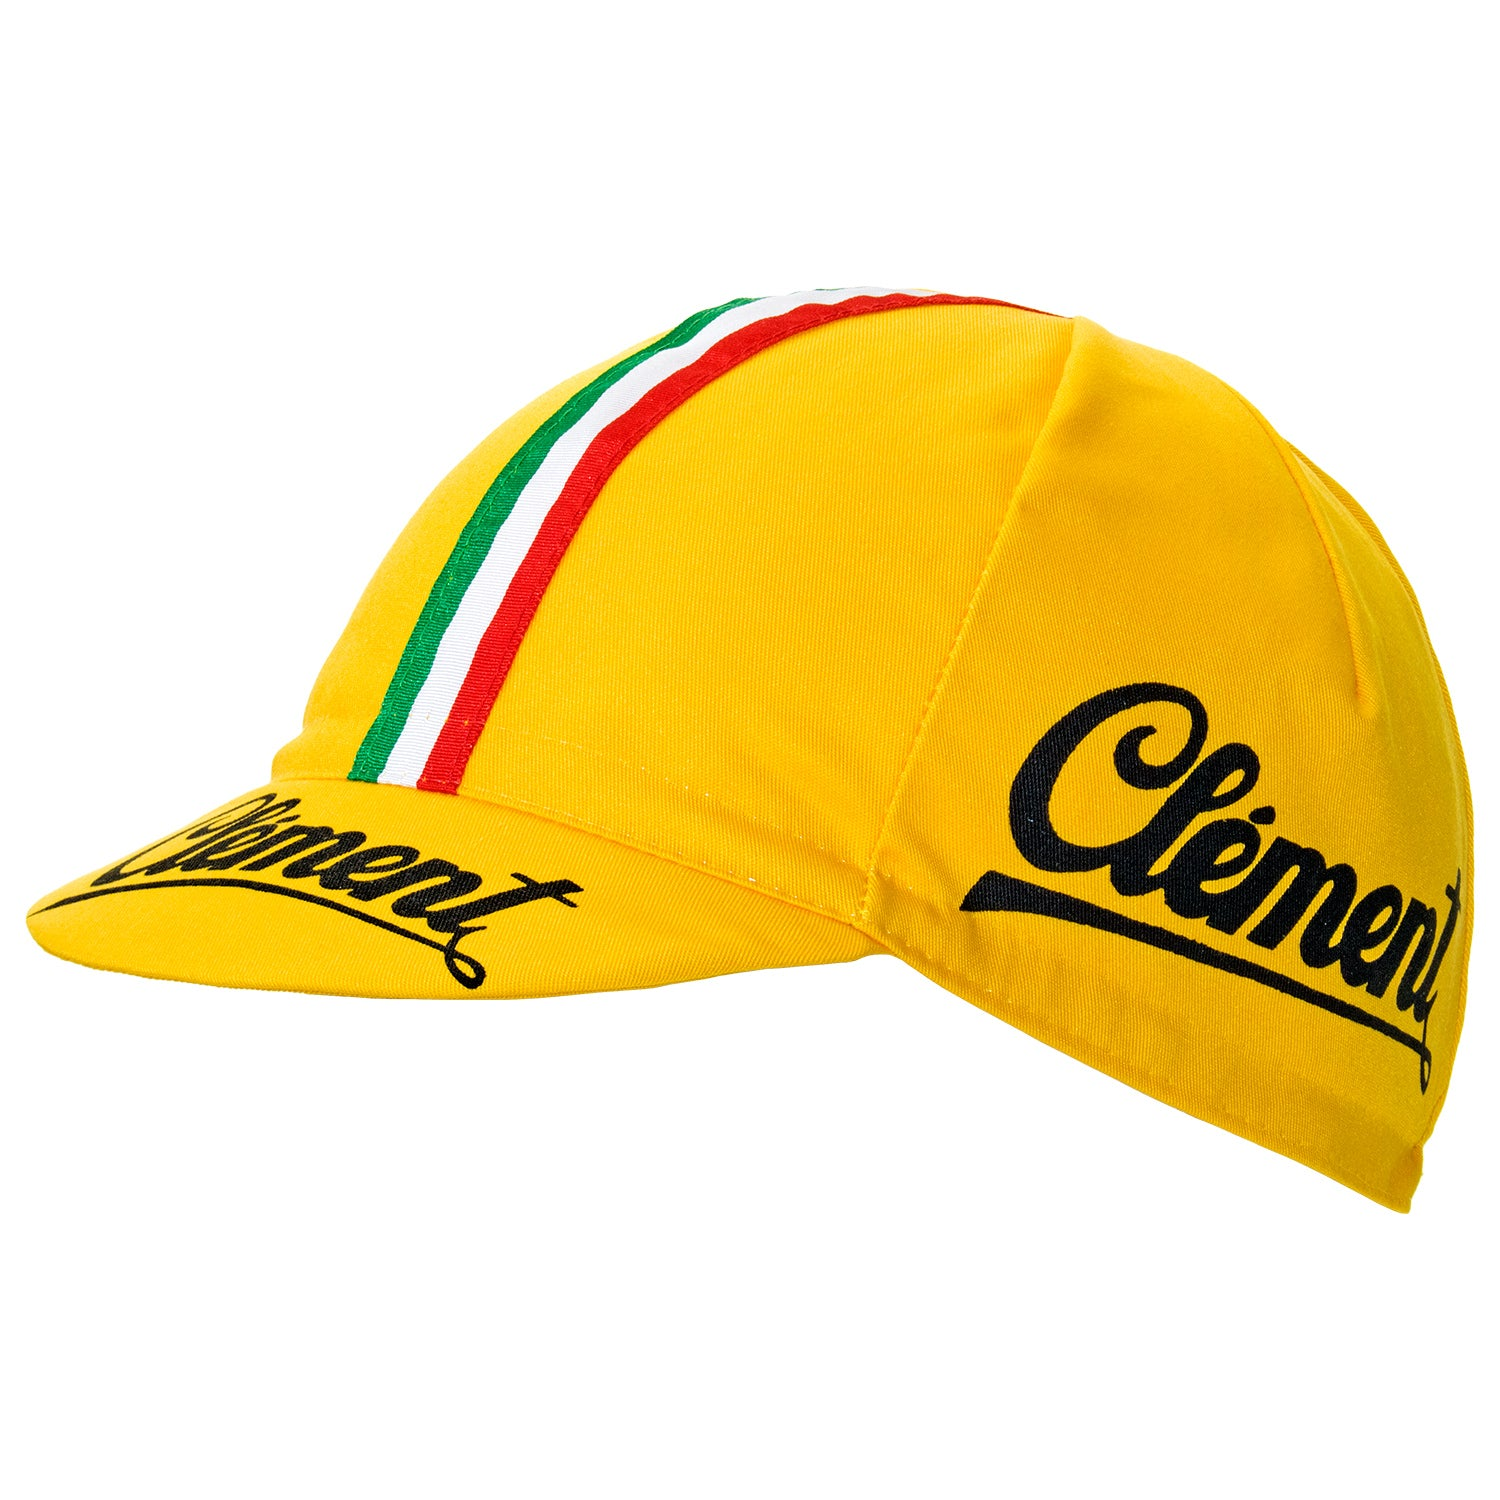 Clément Tubulars Retro Cotton Cycling Cap